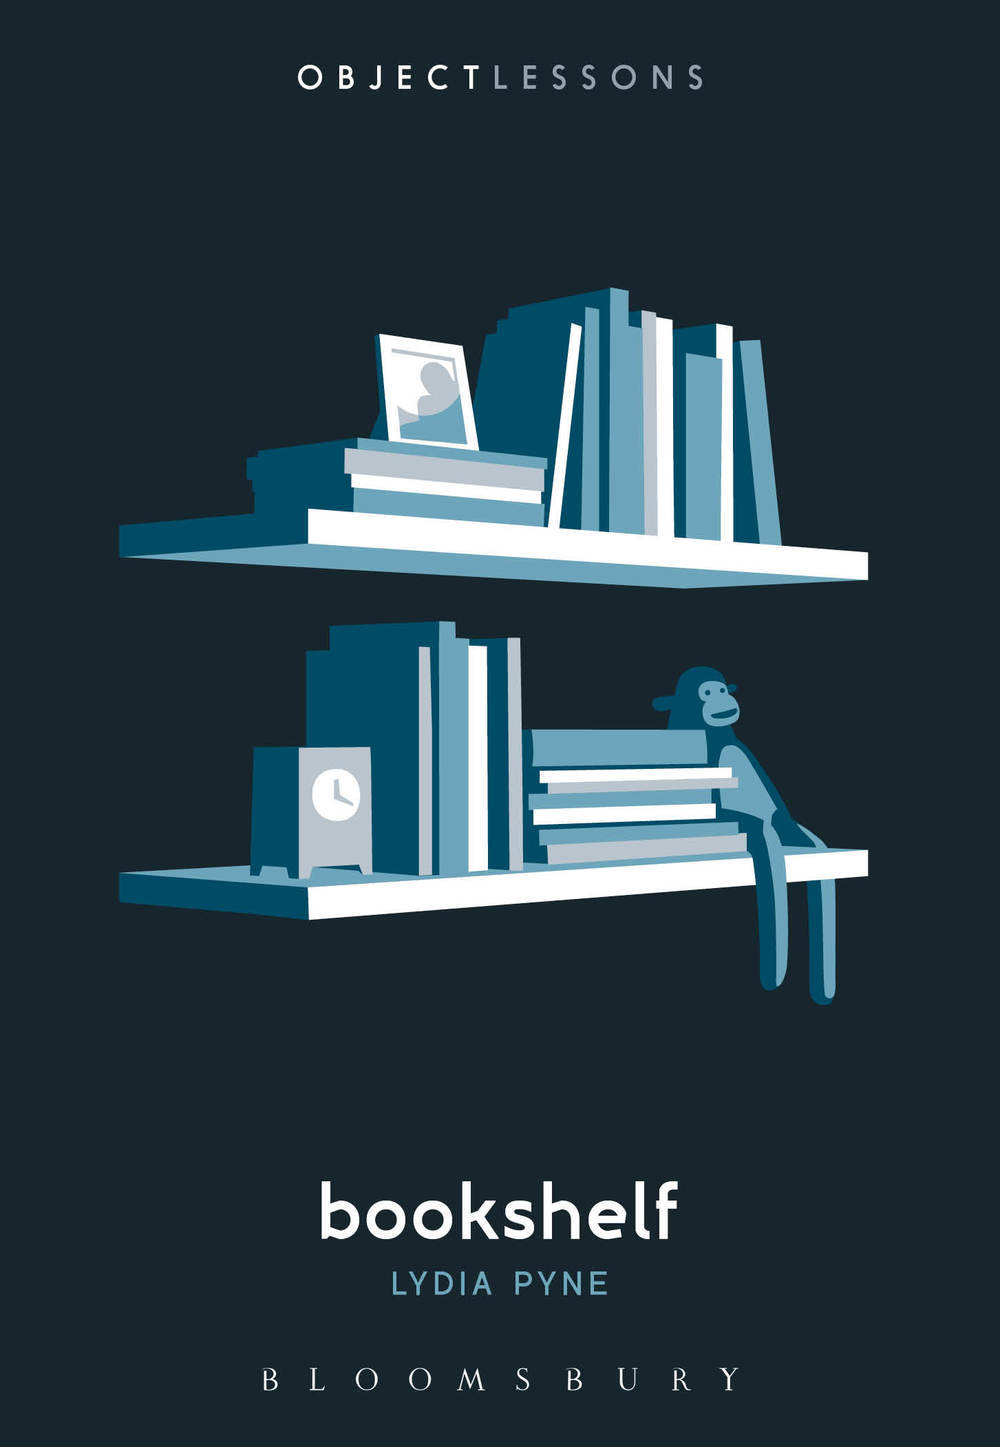 Every Shelf Is Different And Bookshelf Tells A Story One Can Creak With Character In Bohemian Coffee Shop Another Groan